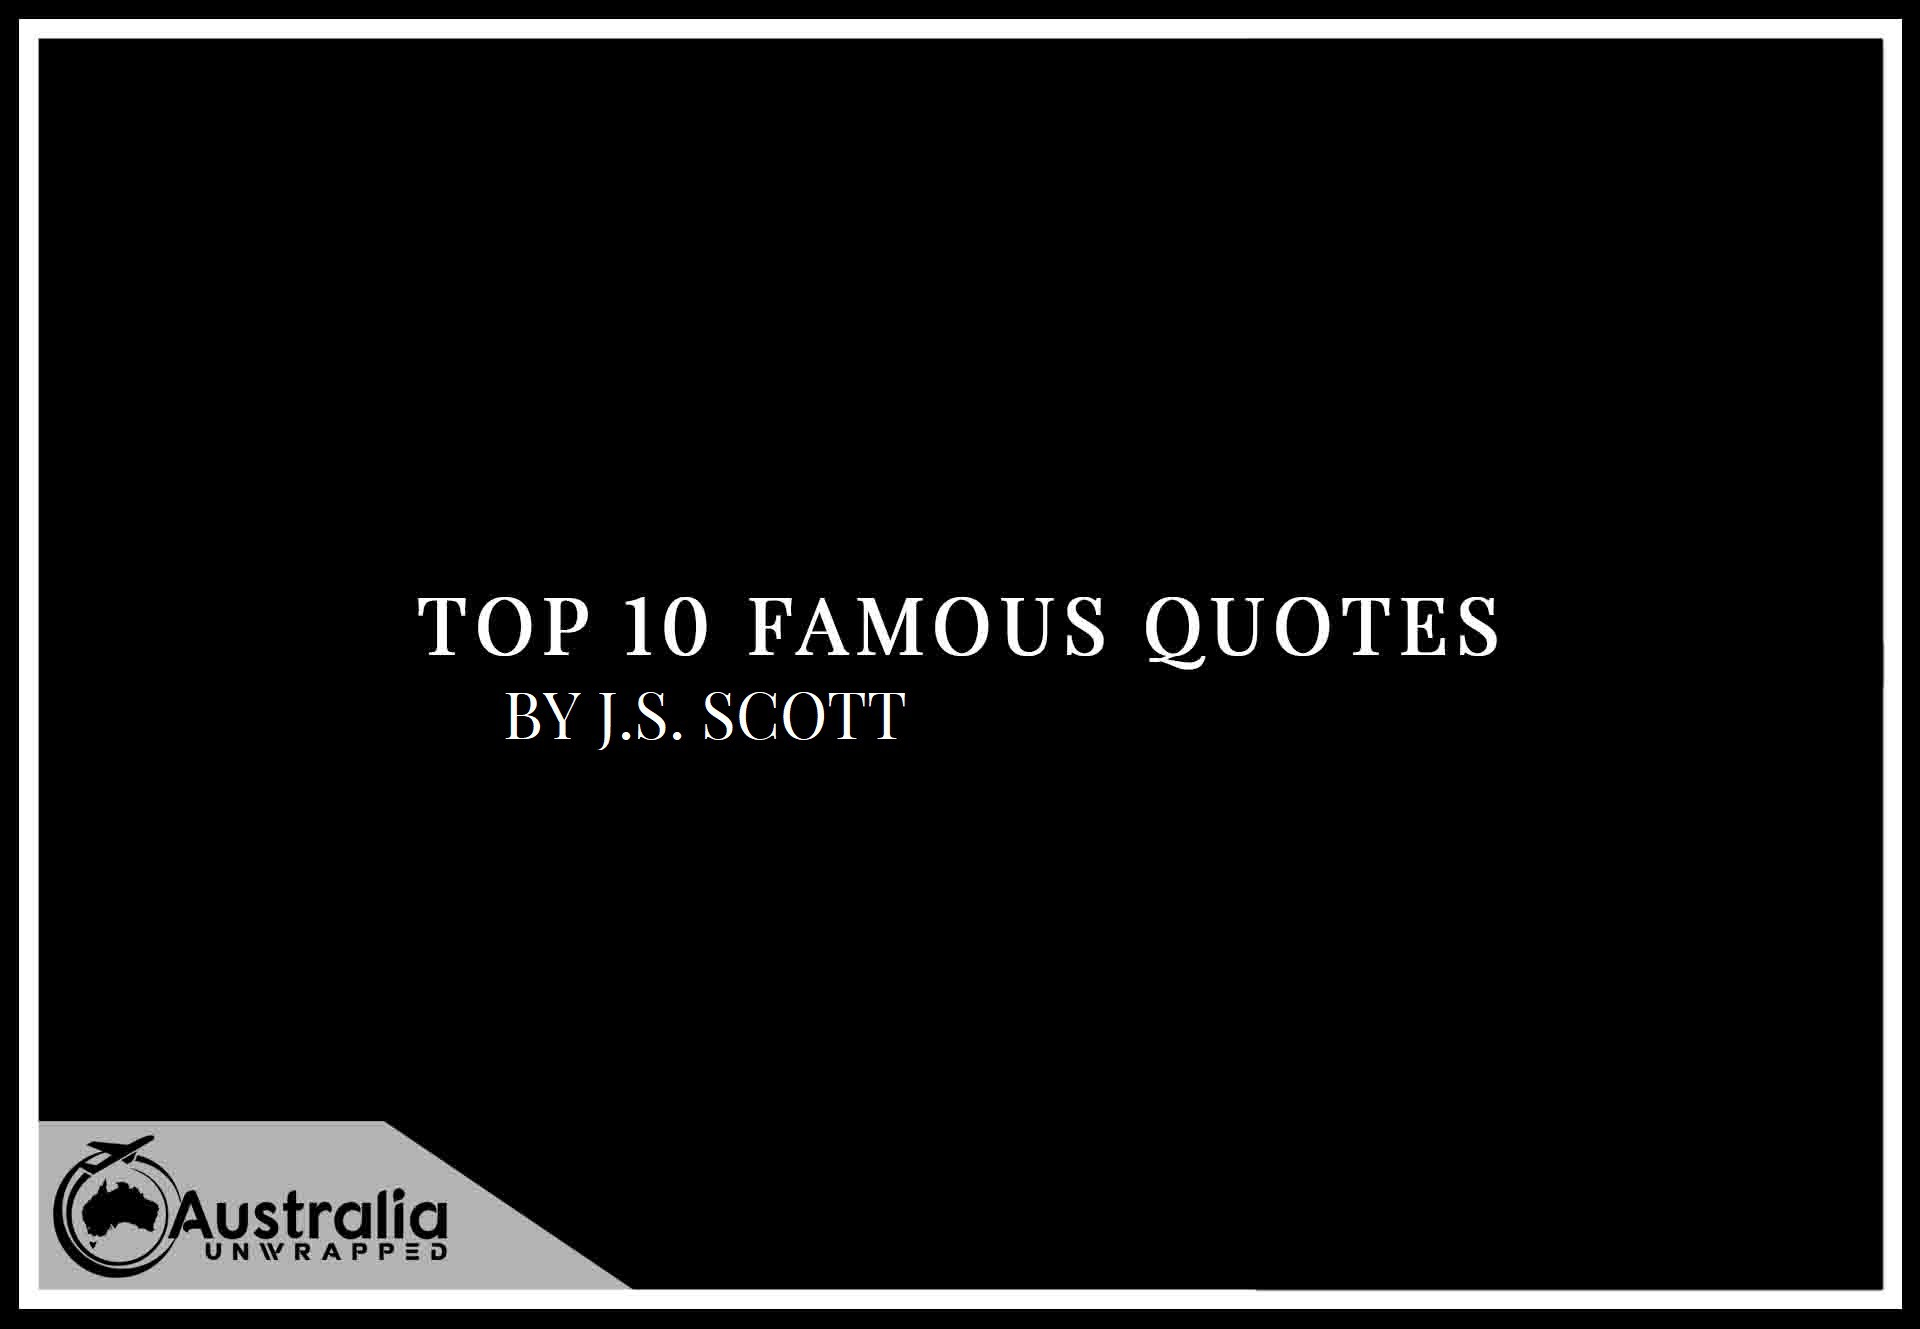 Top 10 Famous Quotes by Author J.S. Scott